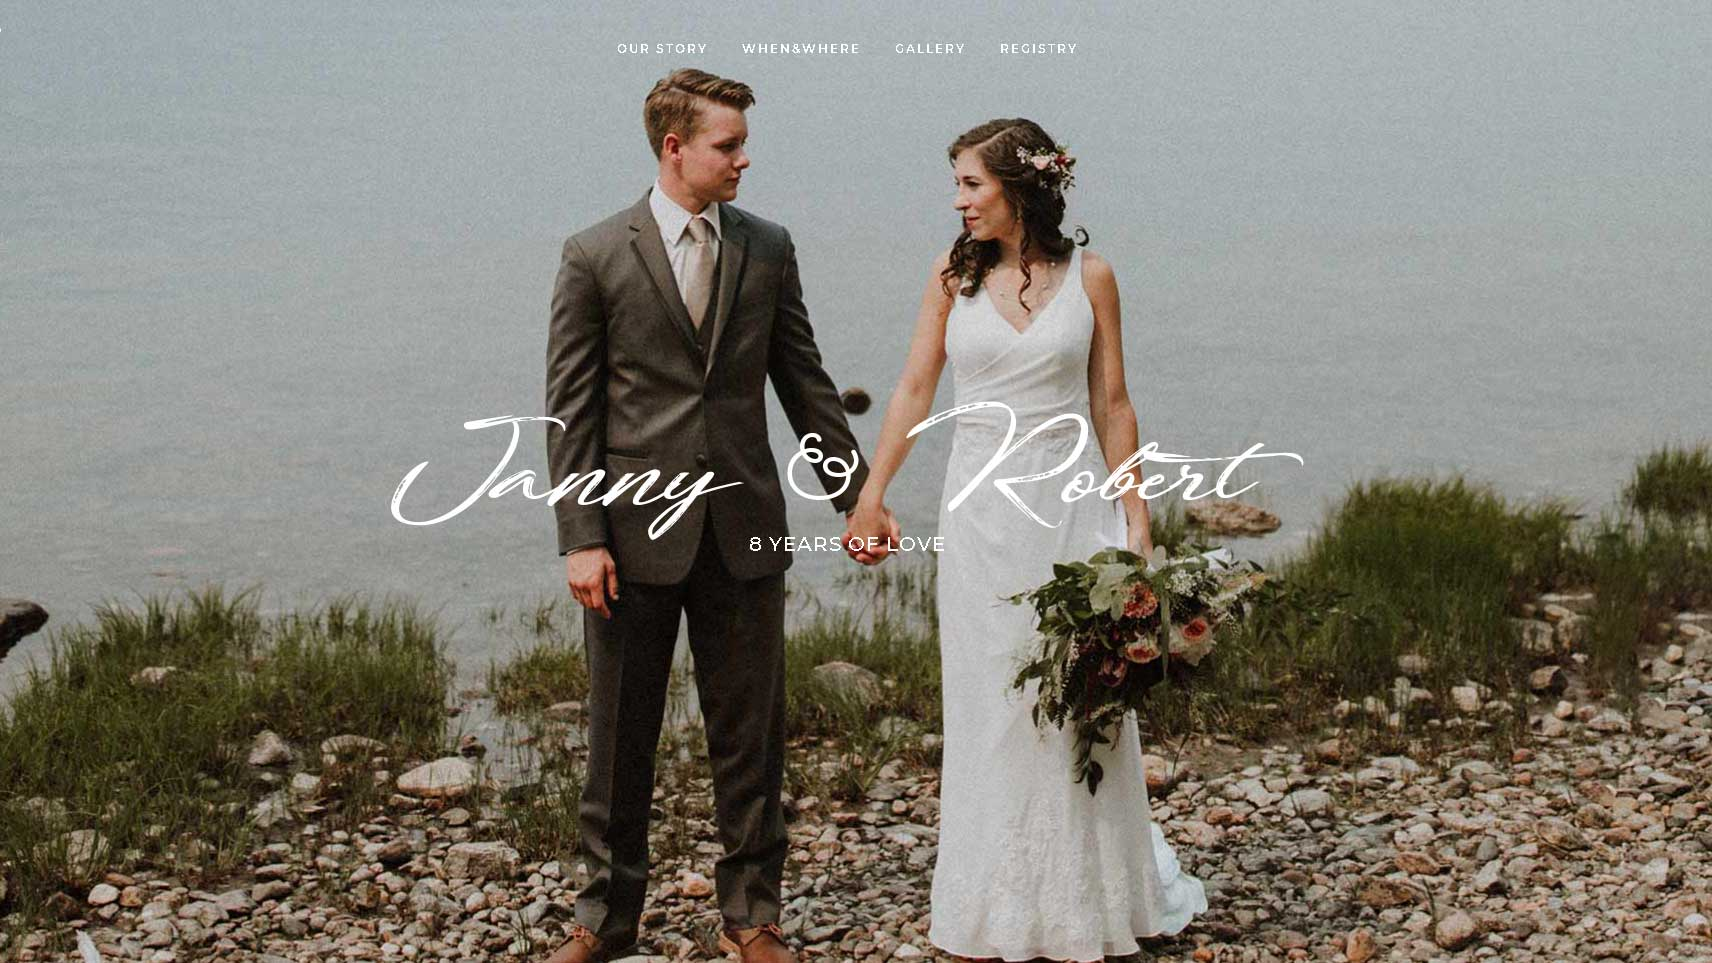 Your Wedding Website